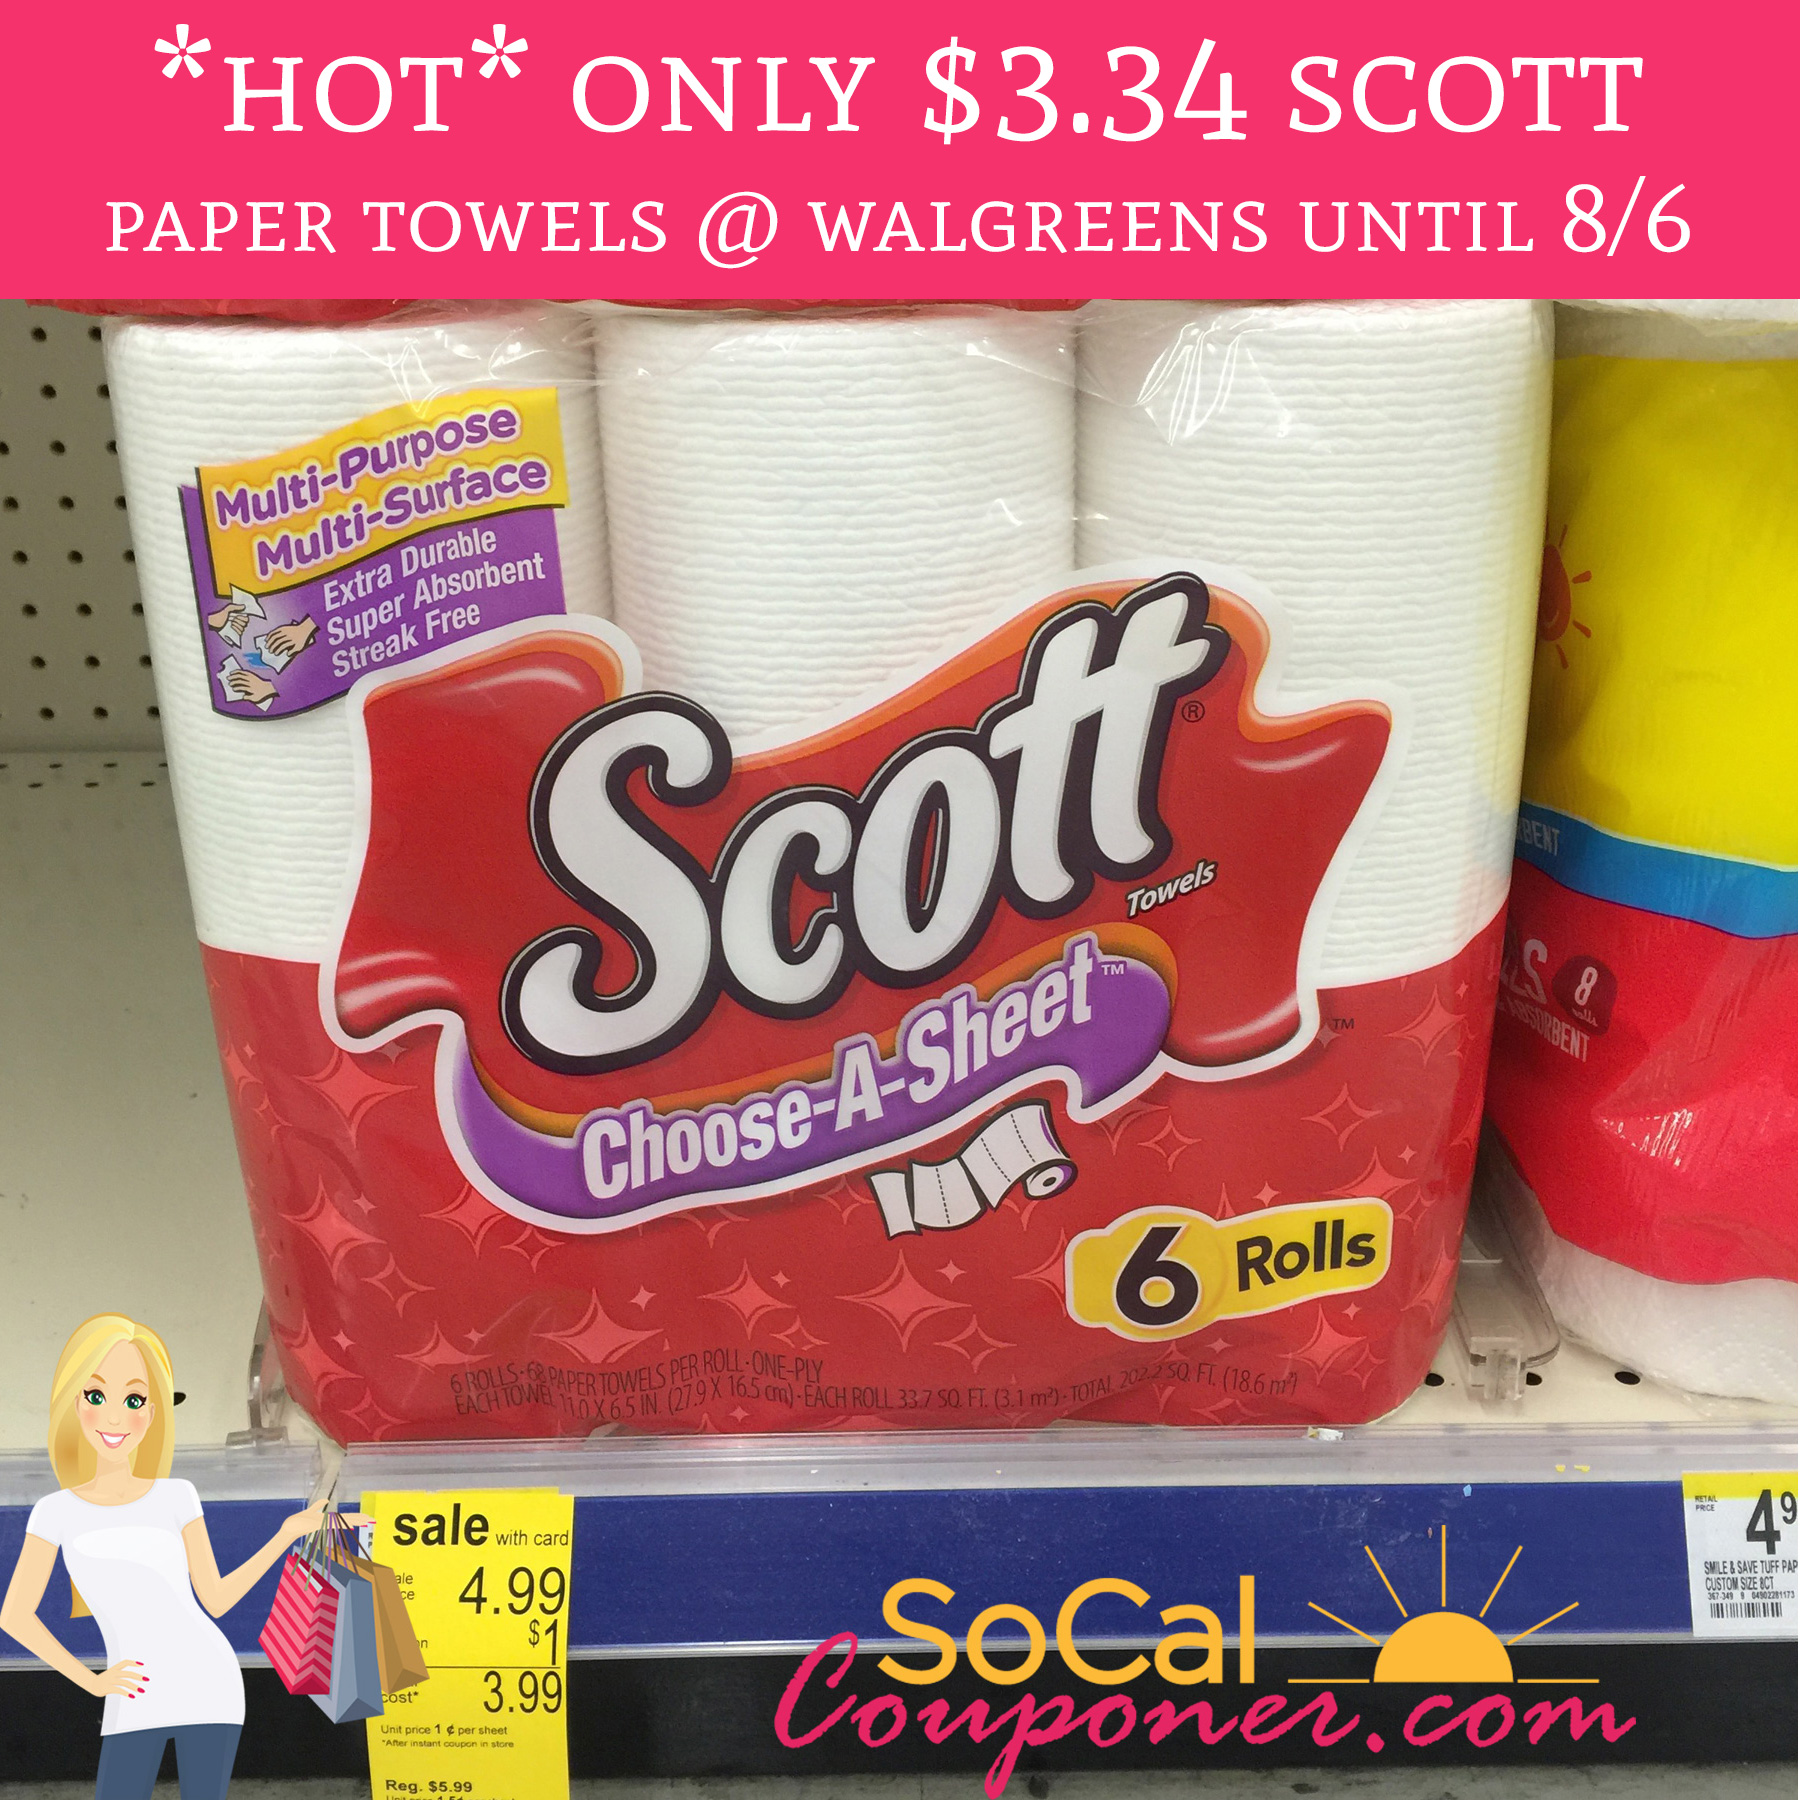 Who Makes Scott Paper Towels: Only $3.34 Scott Paper Towels @ Walgreens Until 8/6